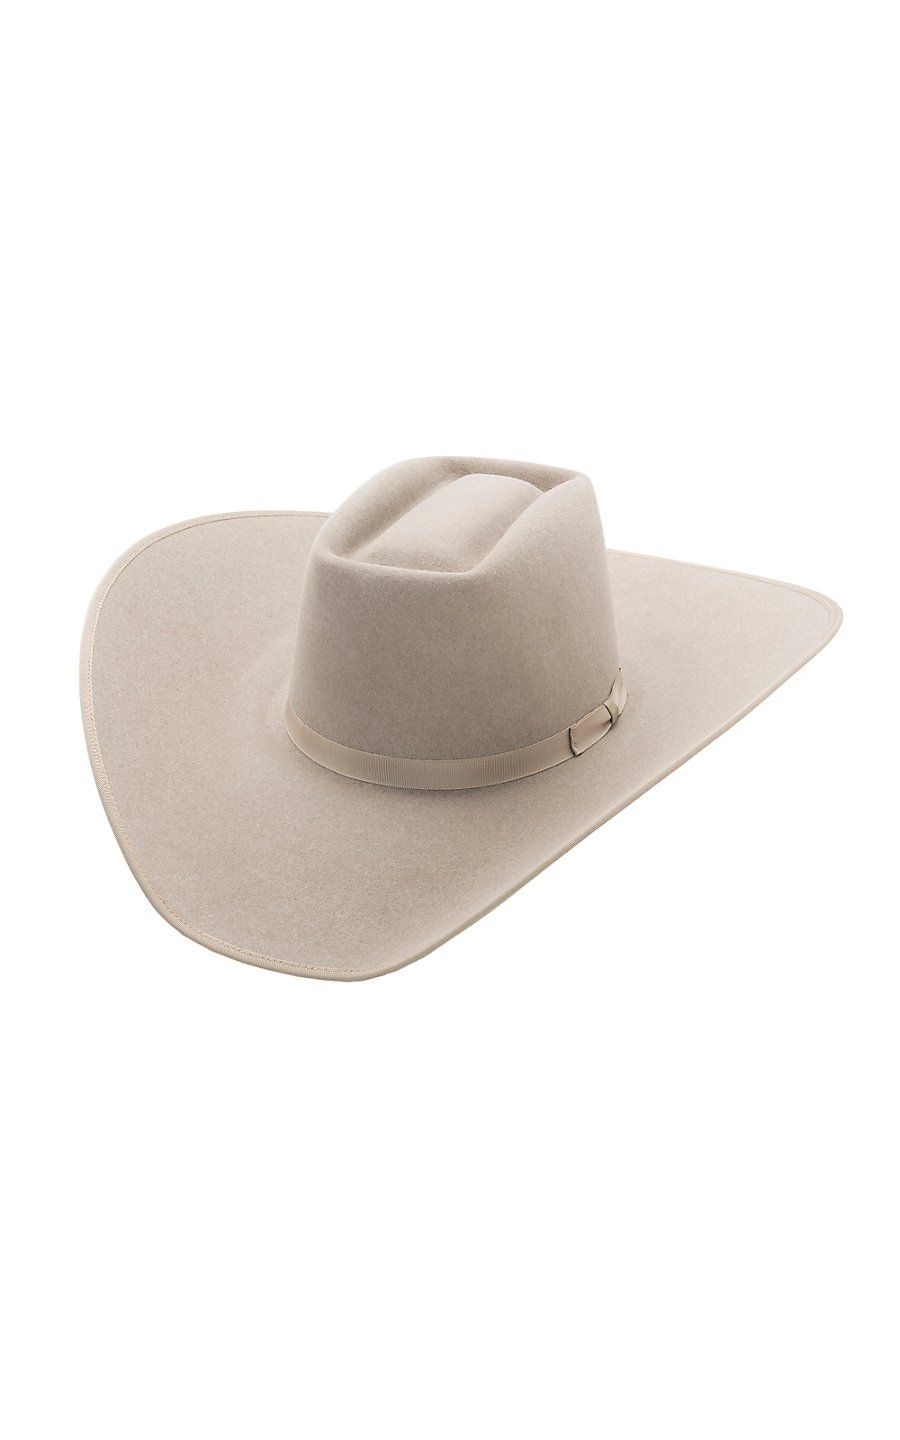 Rodeo King® 10X Brick Ash Bound Edge Felt Cowboy Hat- BRK10AS475 ... 8bfcade74b3